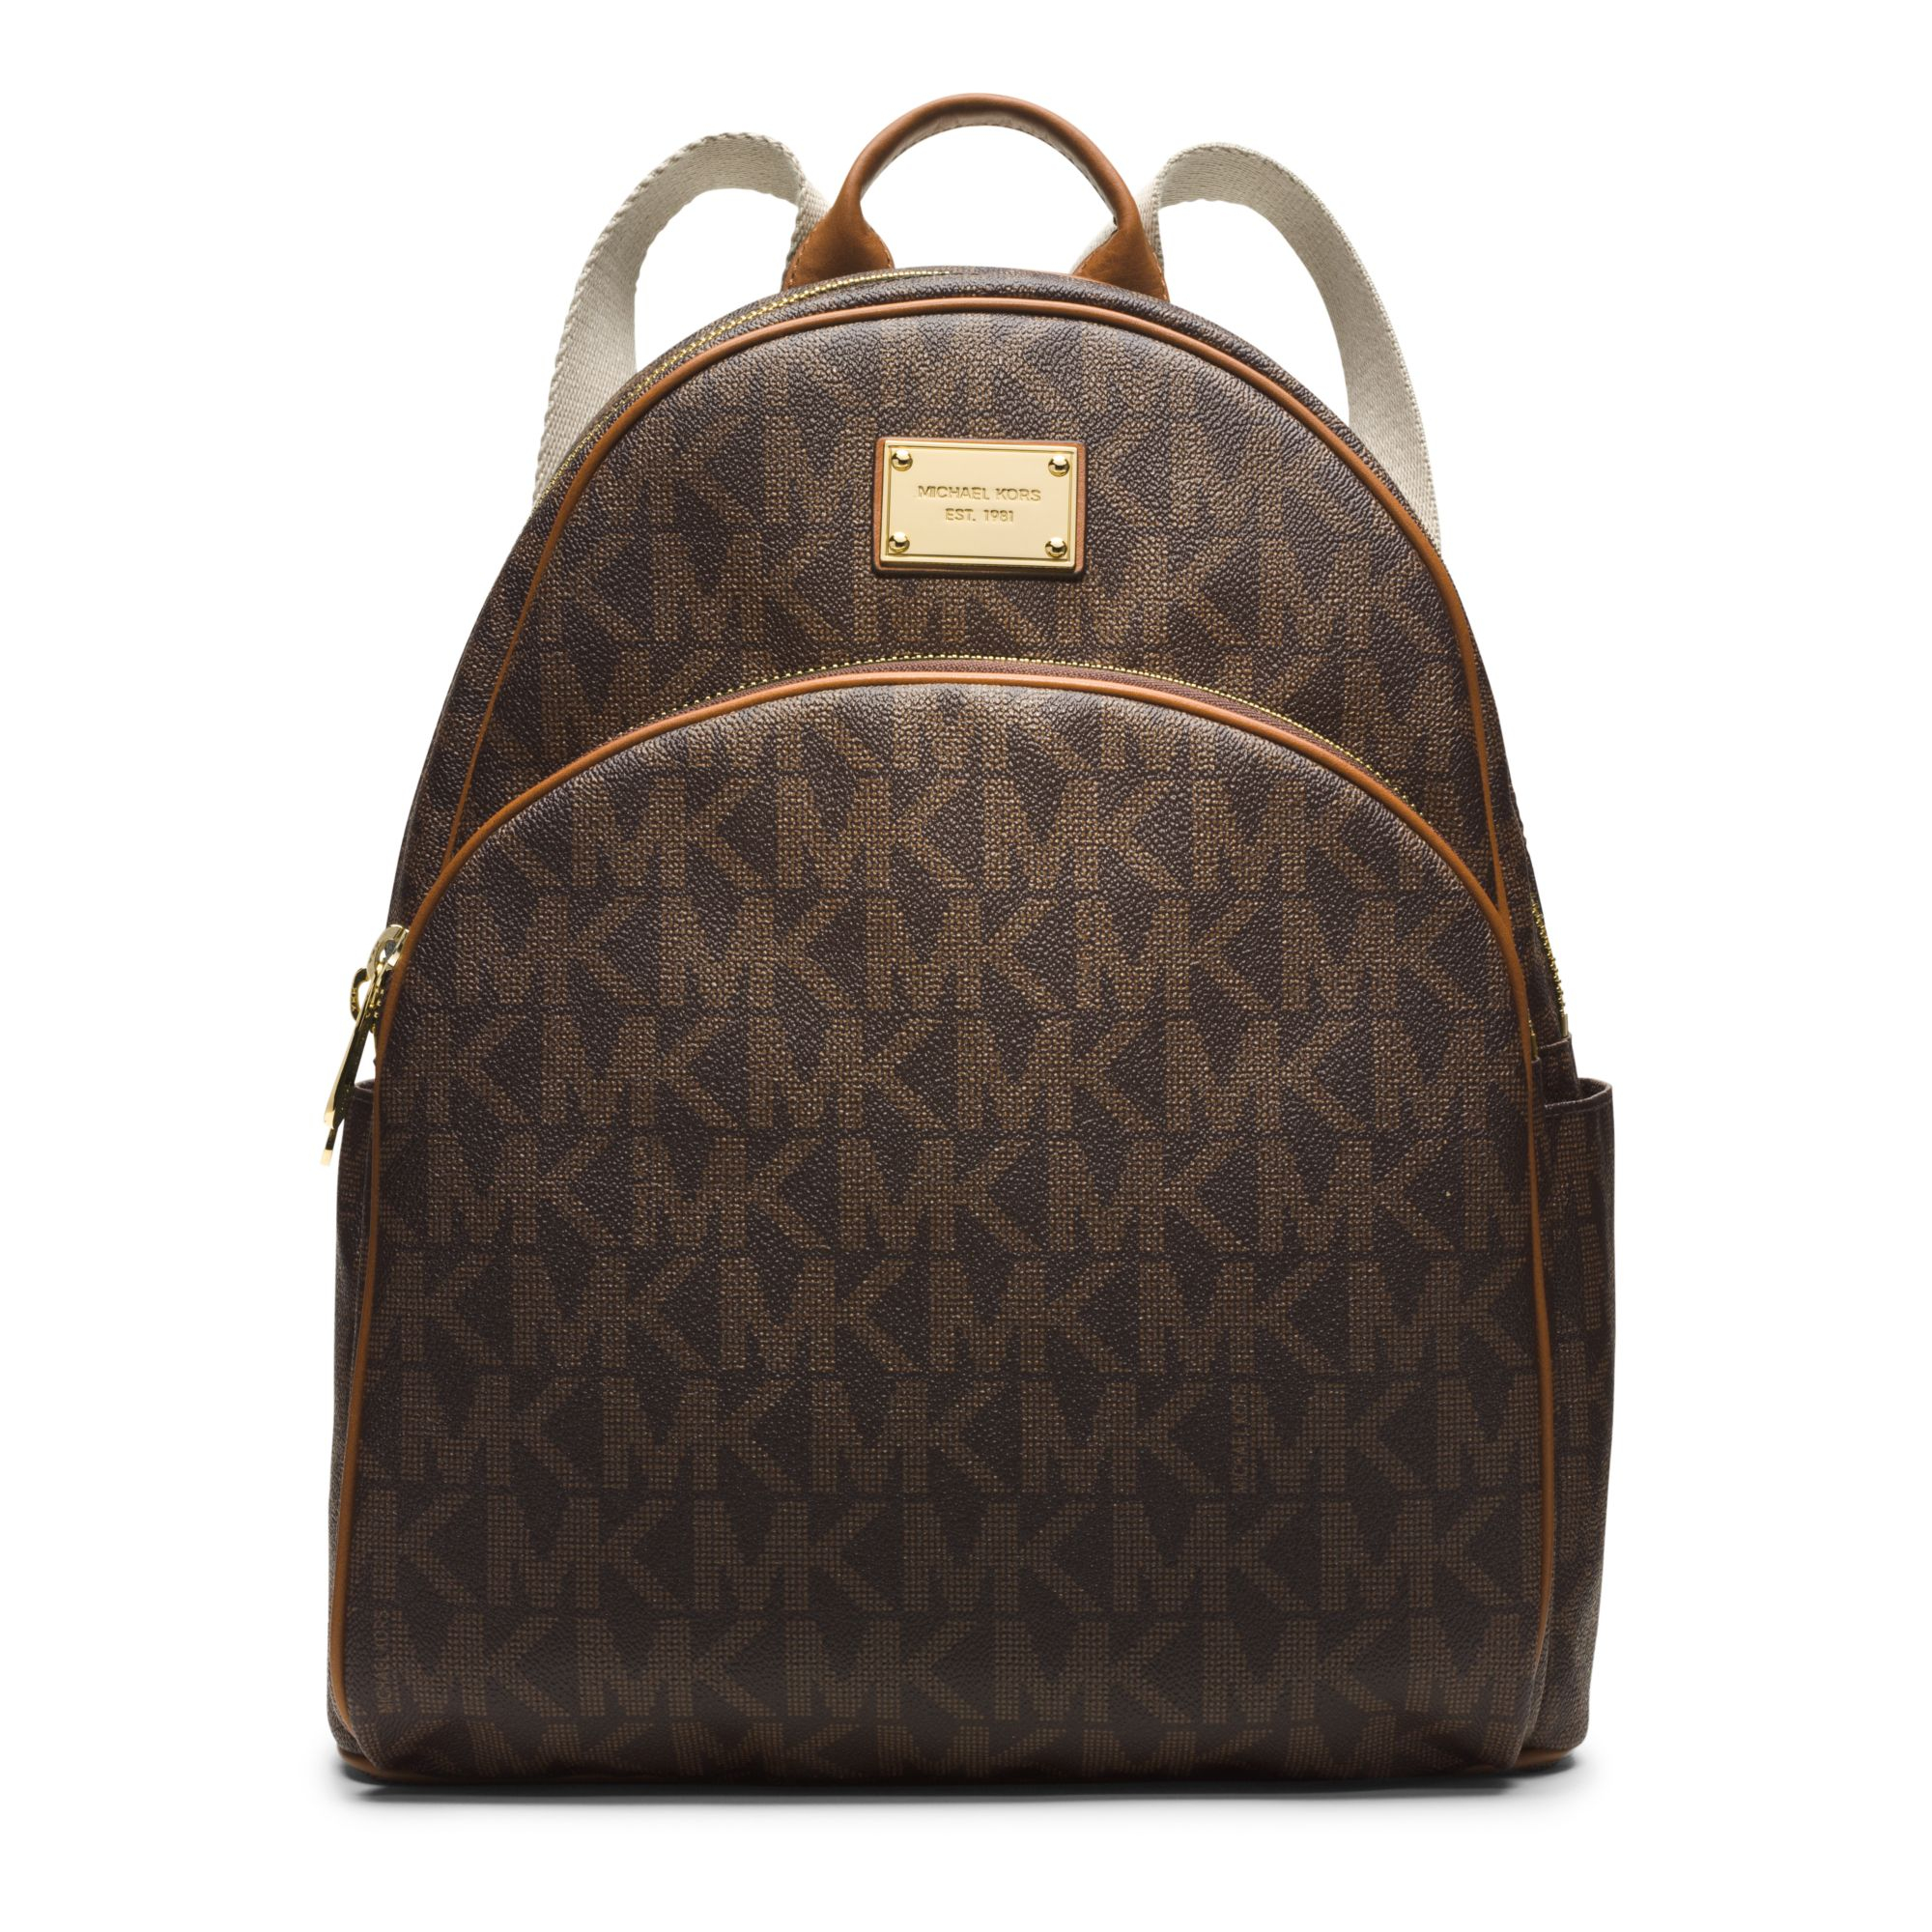 a6b66da79634 Lyst - Michael Kors Jet Set Travel Logo Backpack in Brown